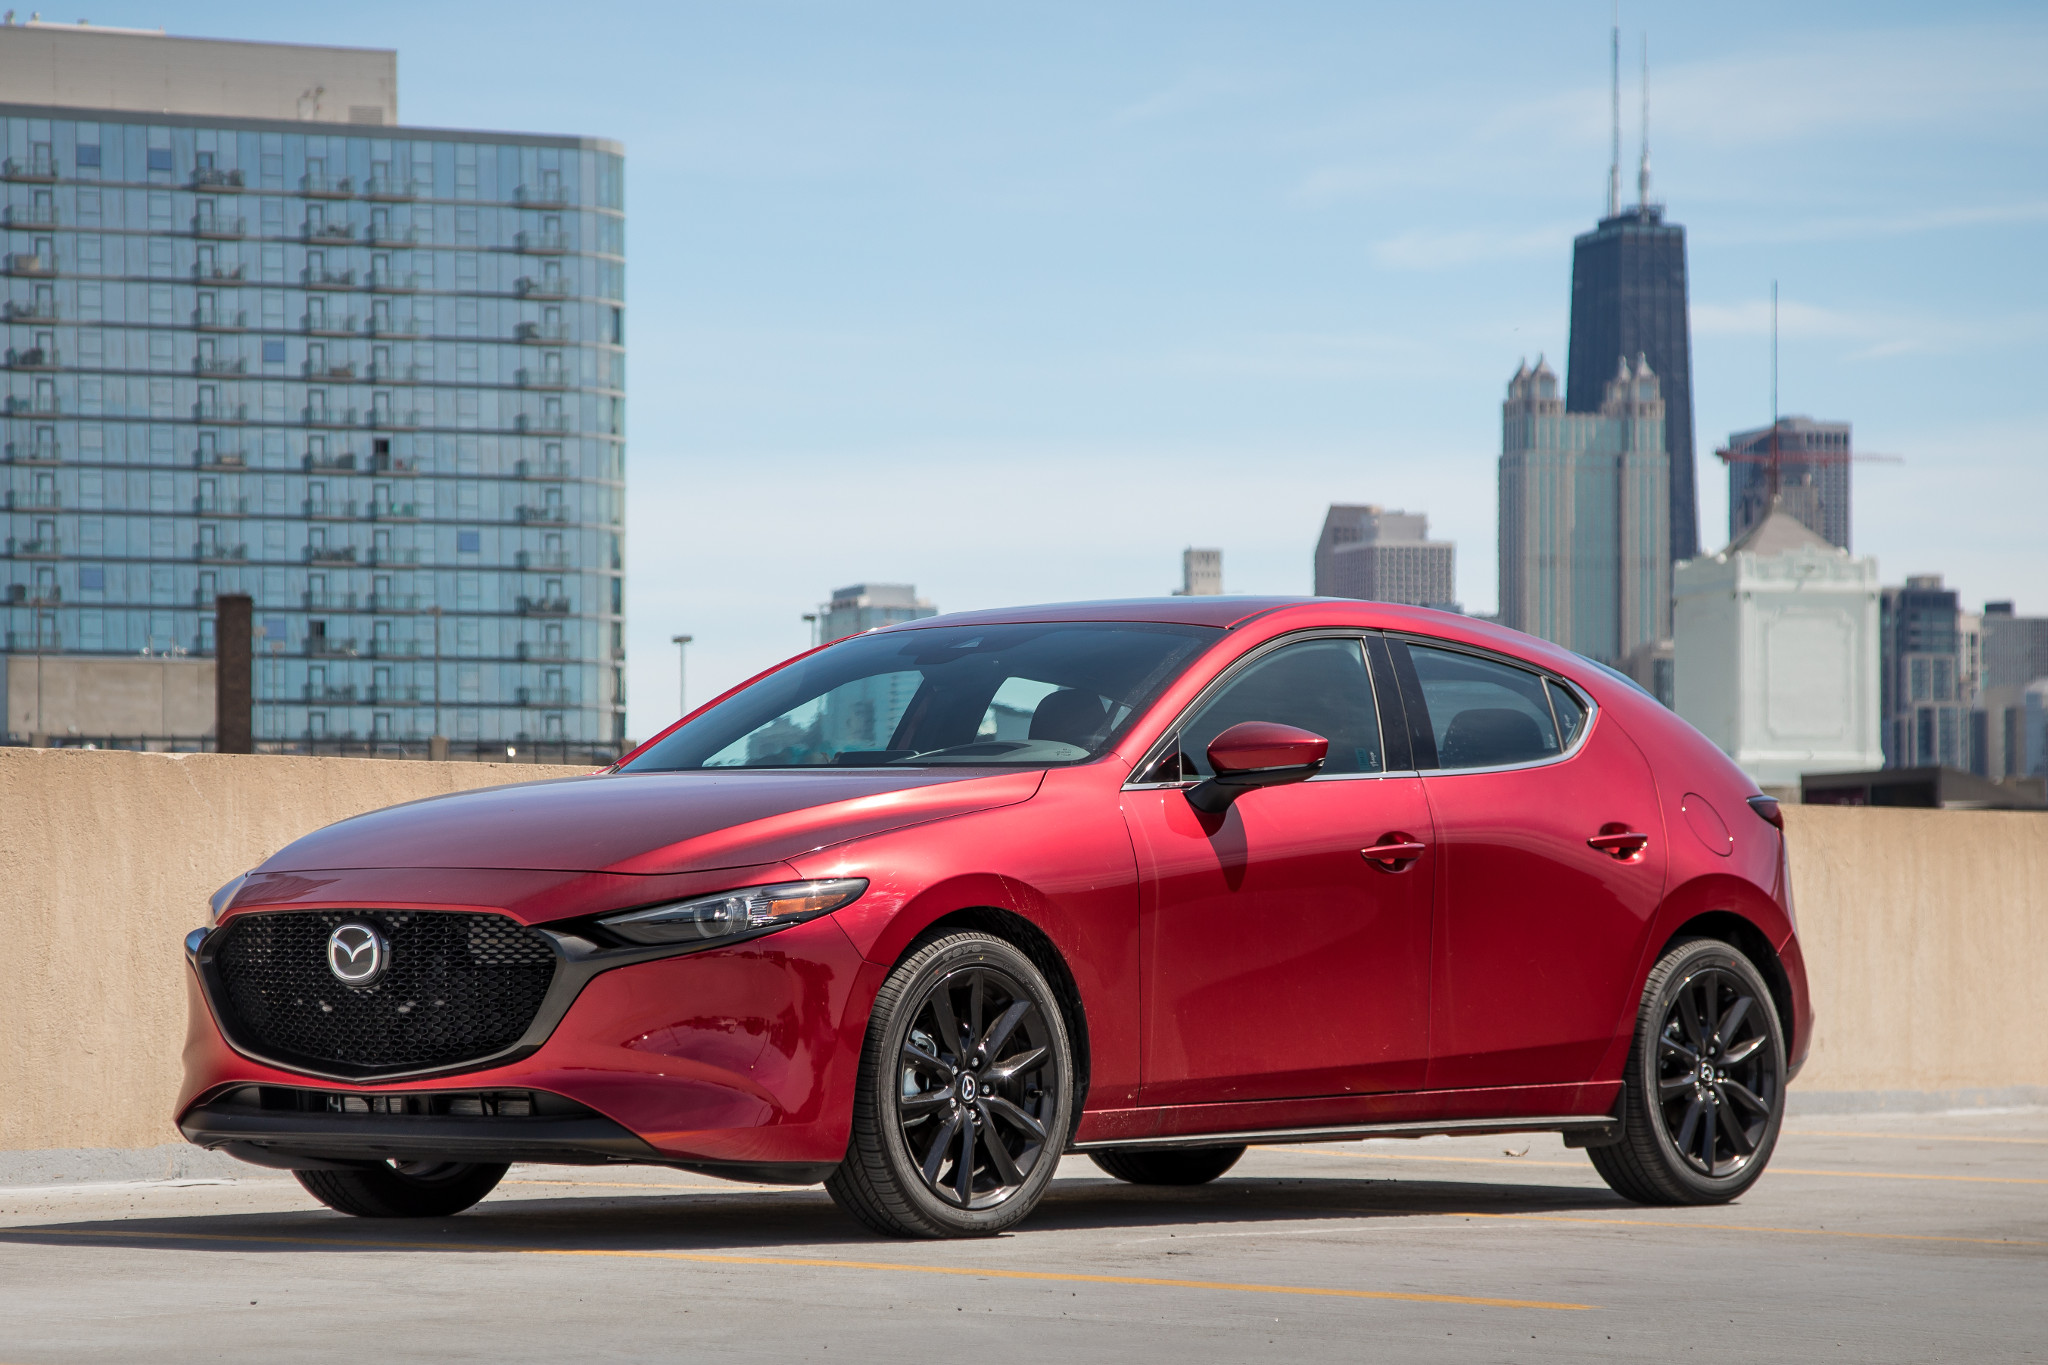 2019 Mazda3 Review: Niche Appeal